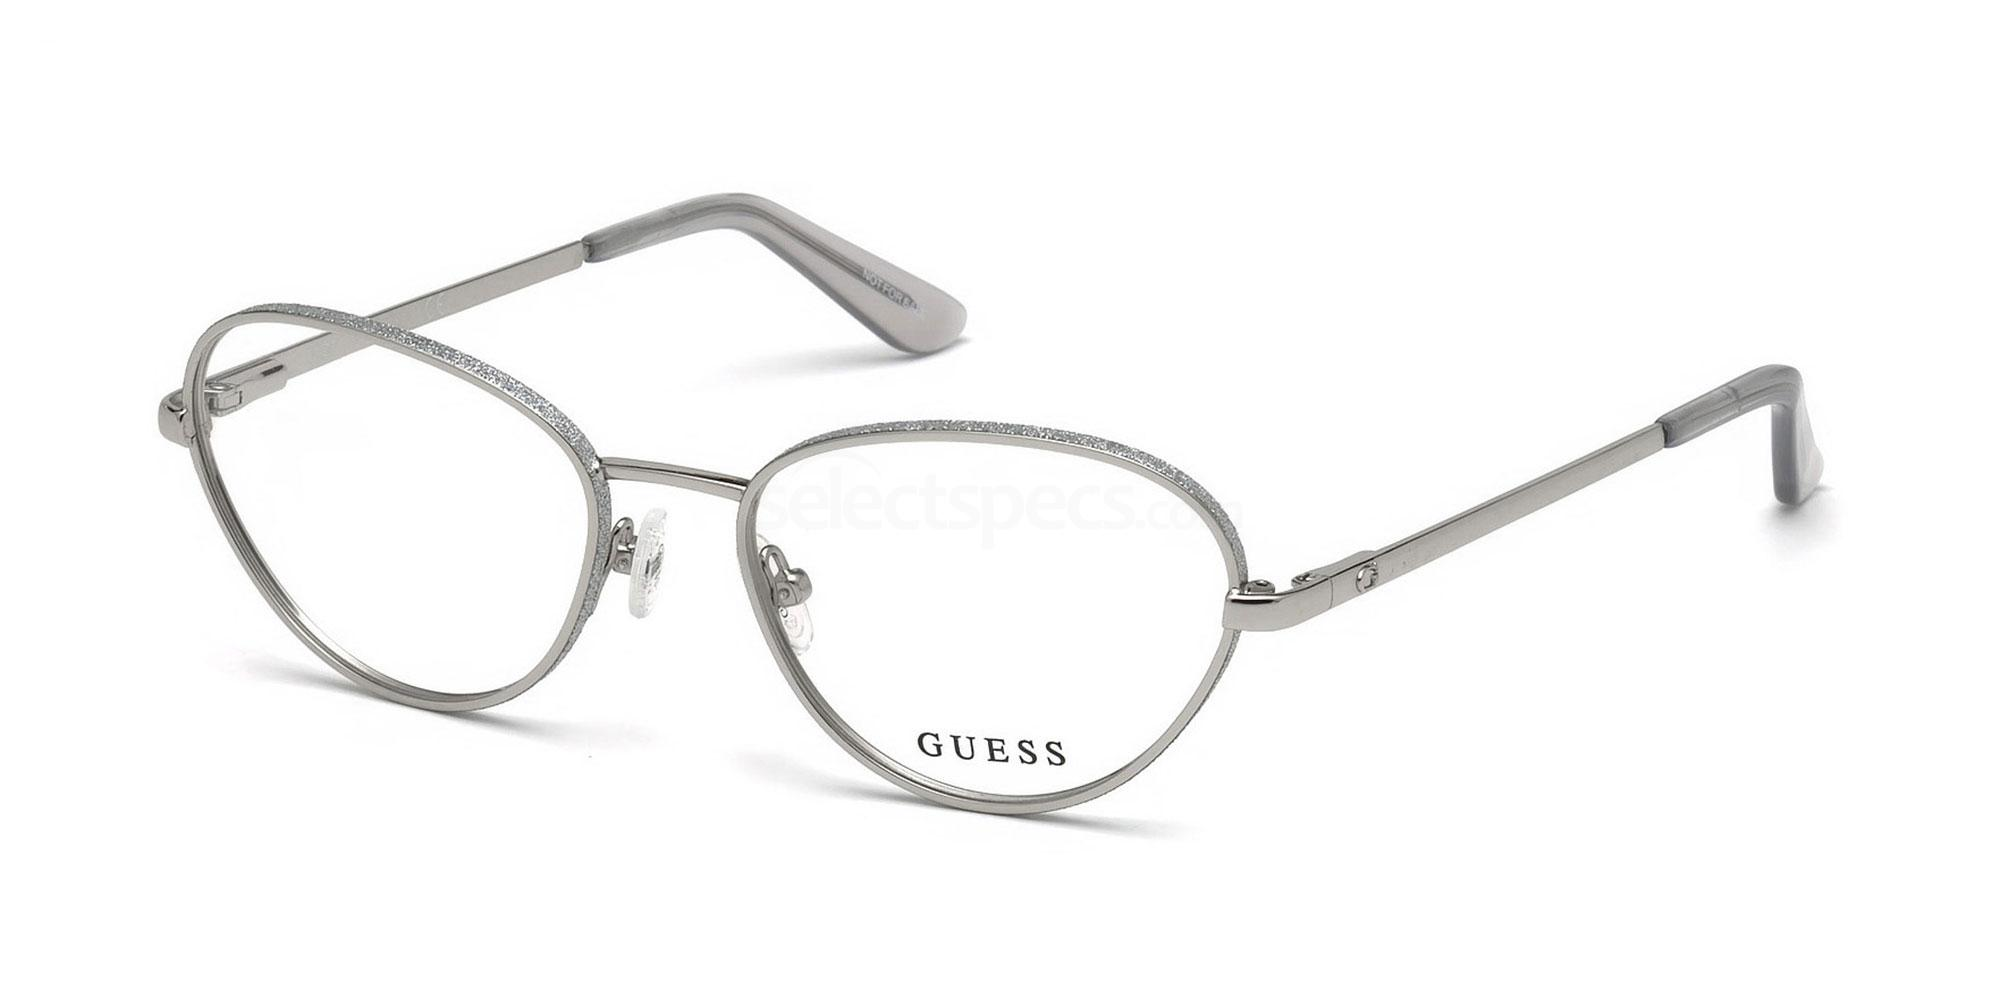 010 GU2670 Glasses, Guess